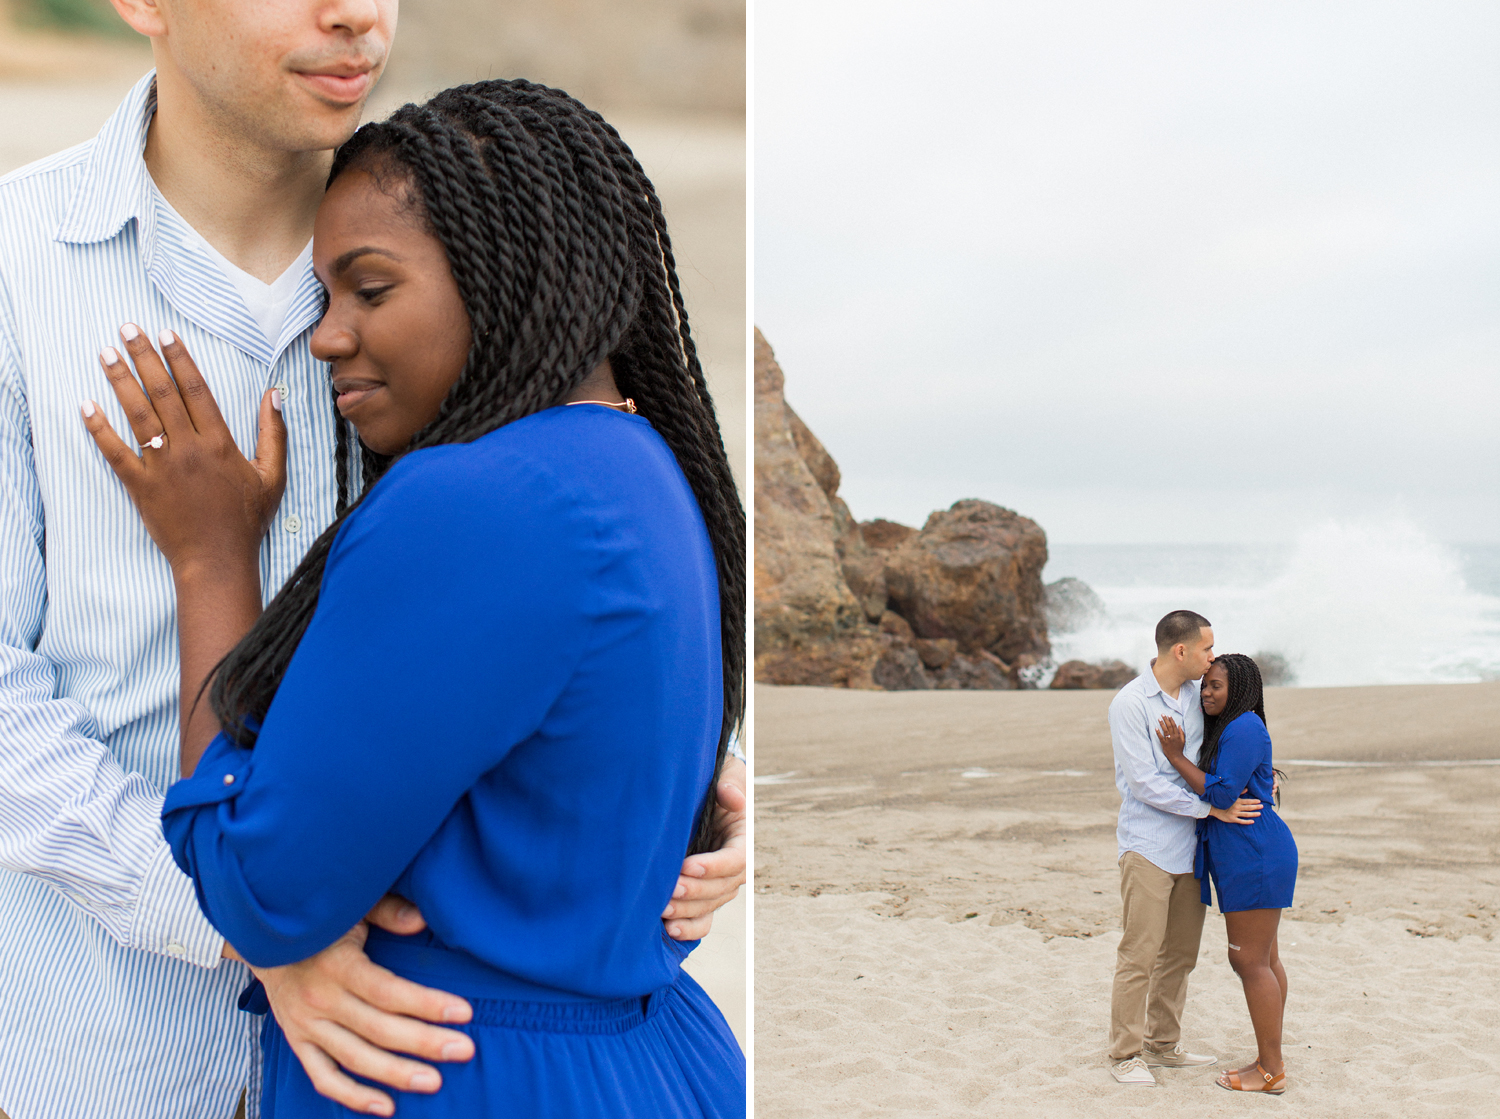 los-angeles-proposal-photographer013.jpg